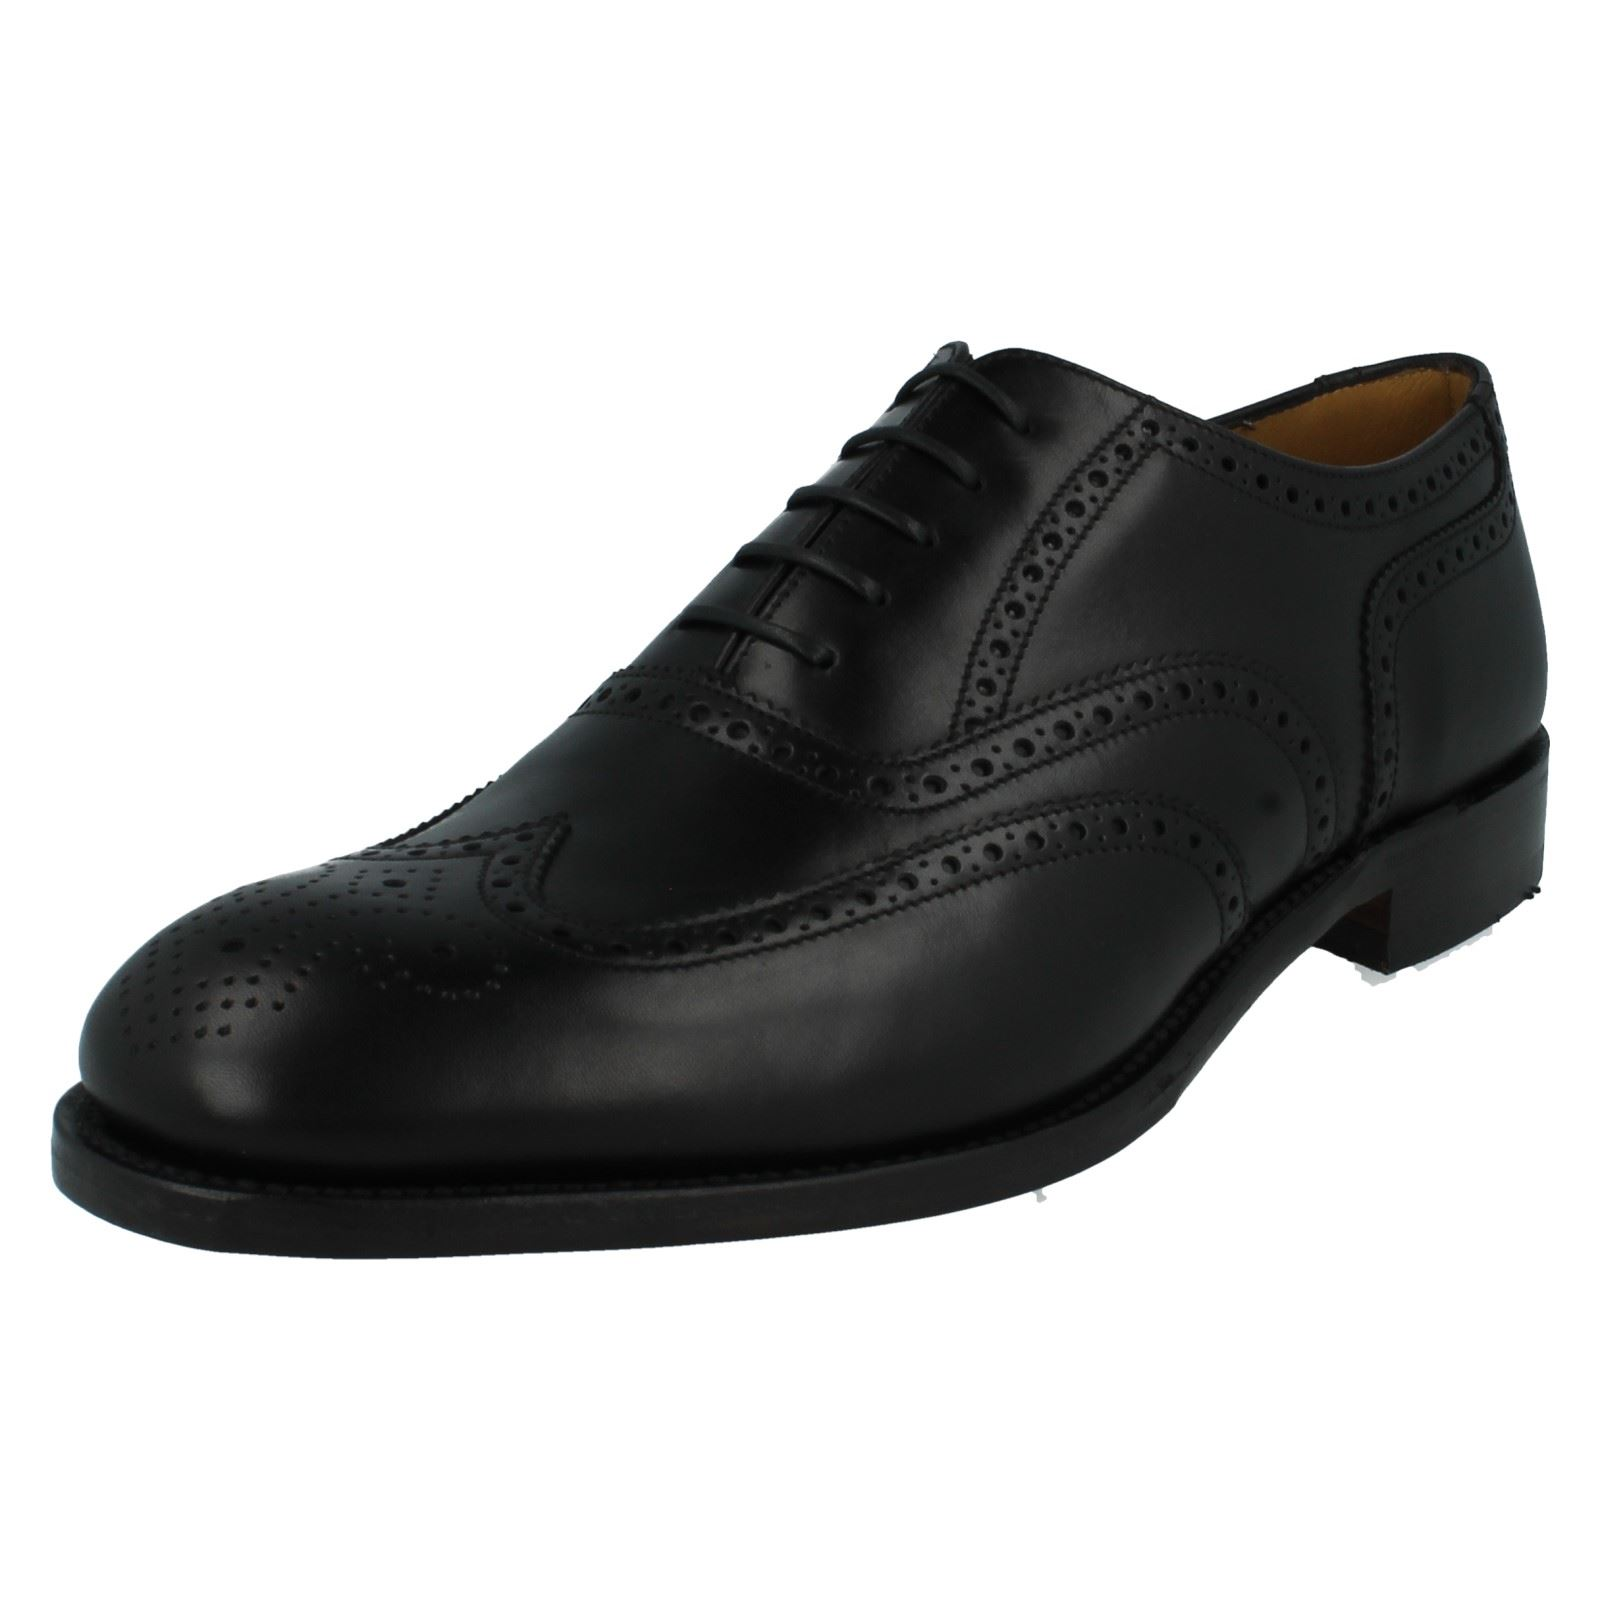 Mens Shoes Loake Formal Leather Brogue Shoes Mens Severn2 87bd61